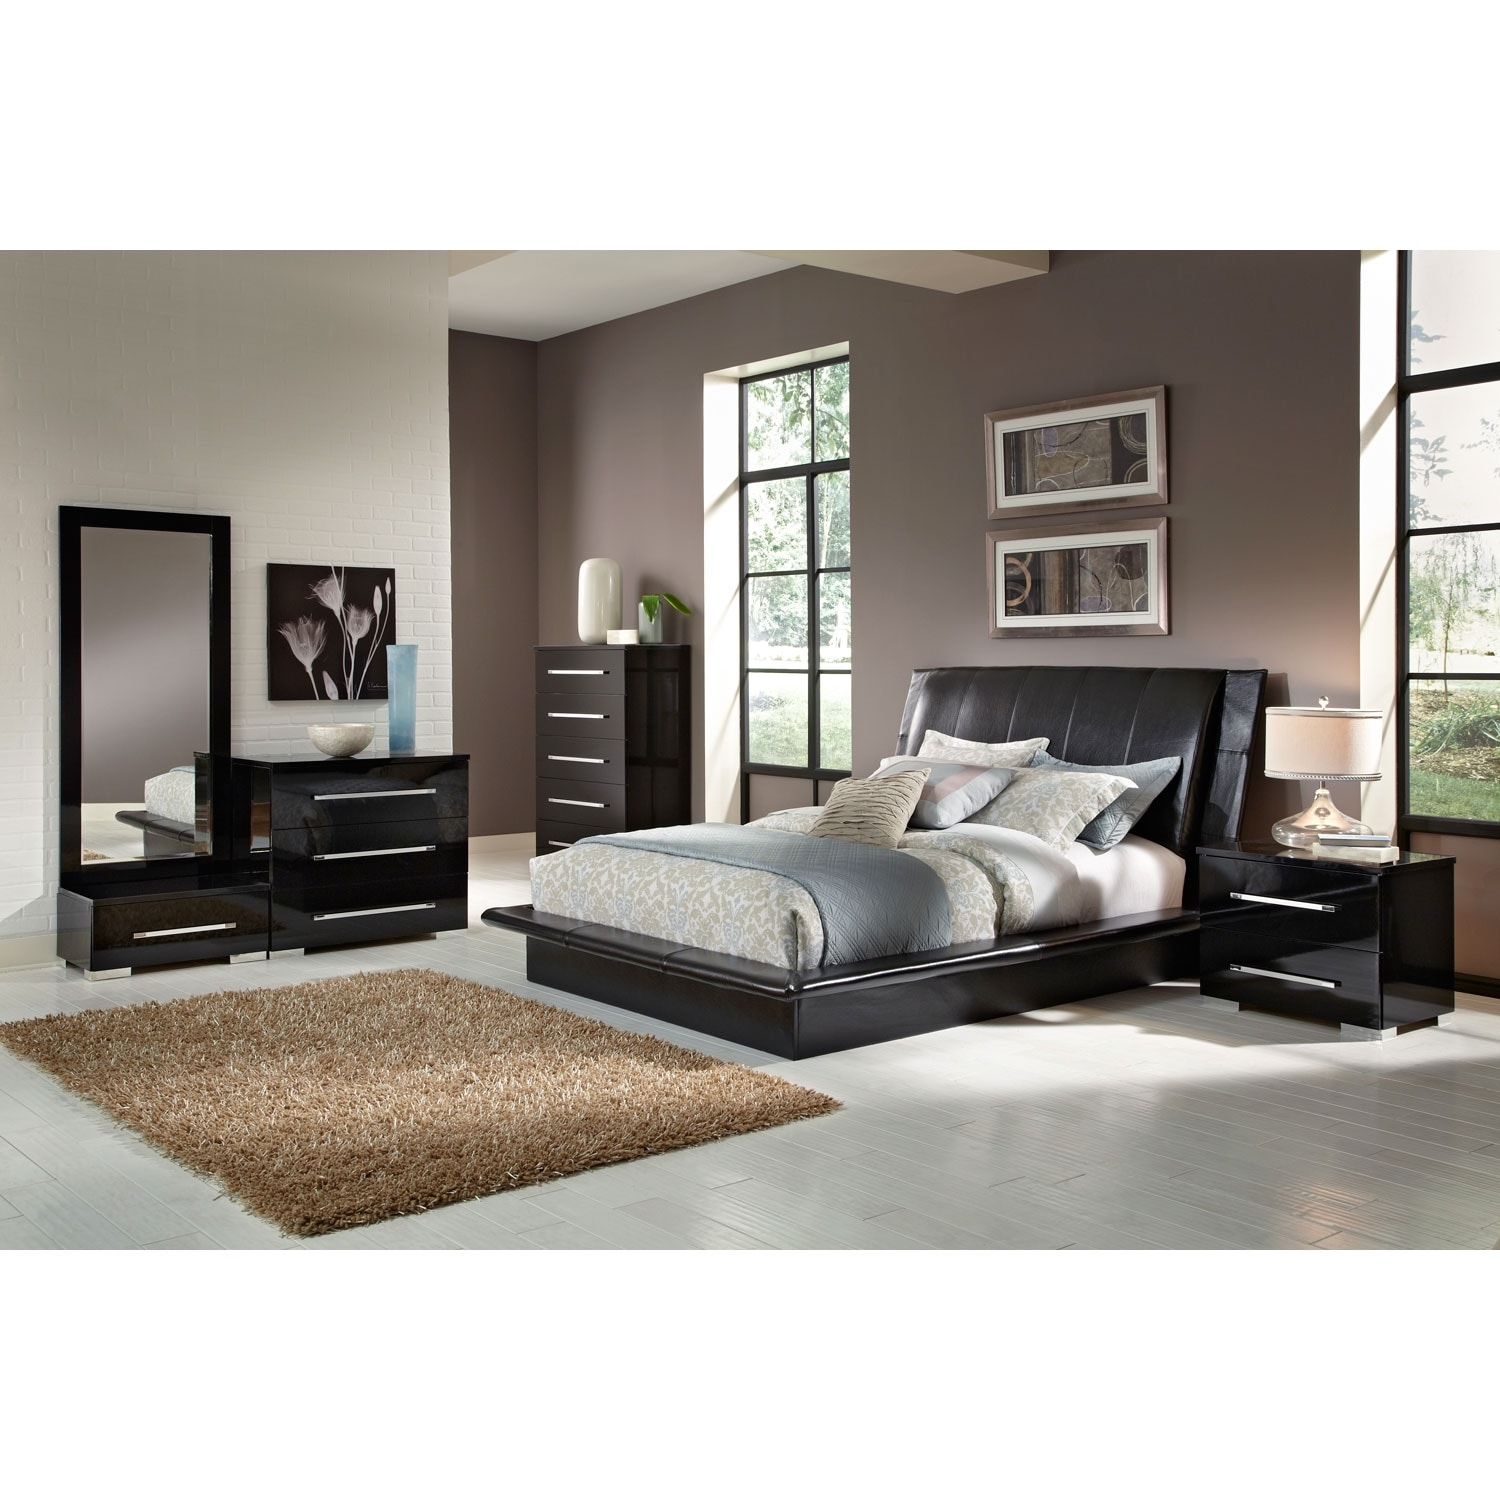 [Dimora Black 7 Pc. Queen Bedroom (Alternate)]